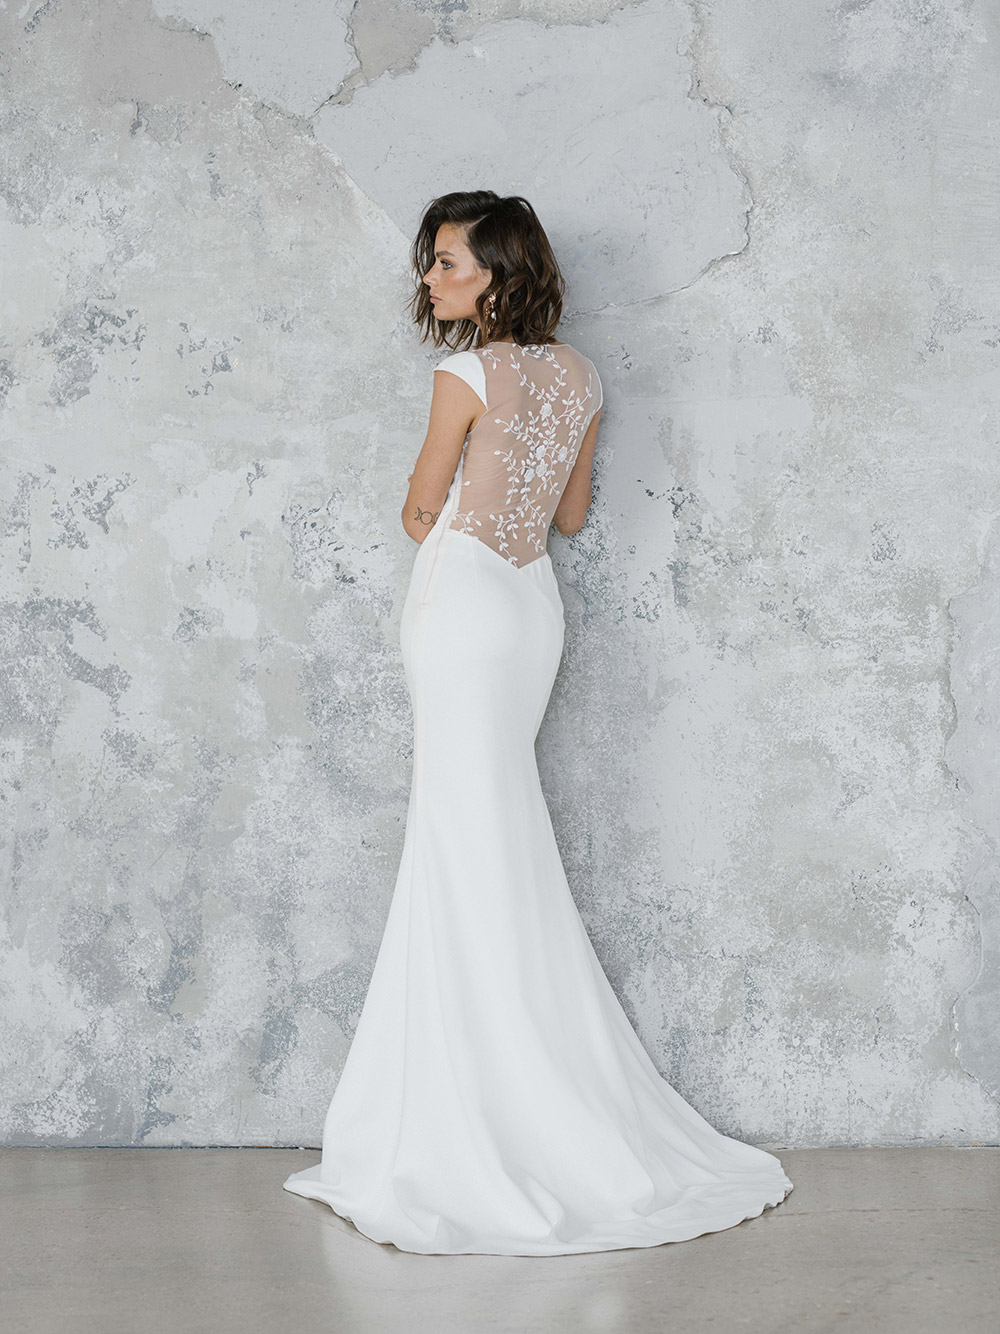 Rime Arodaky 2020 Bridal Collection. www.theweddingnotebook.com